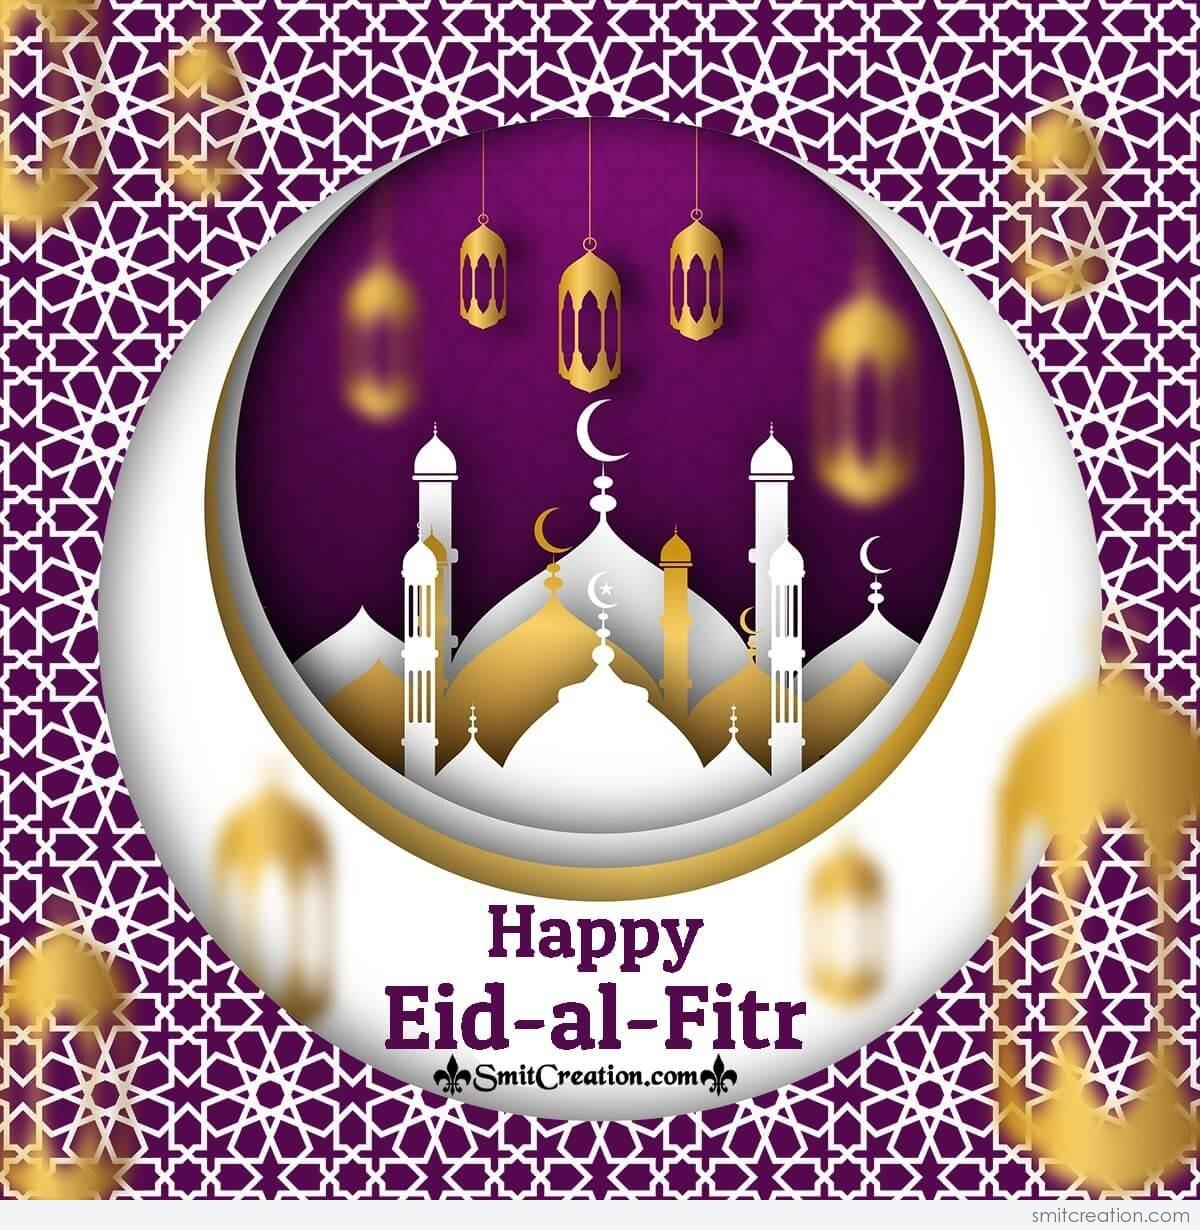 eid alfitr images pictures and graphics  smitcreation